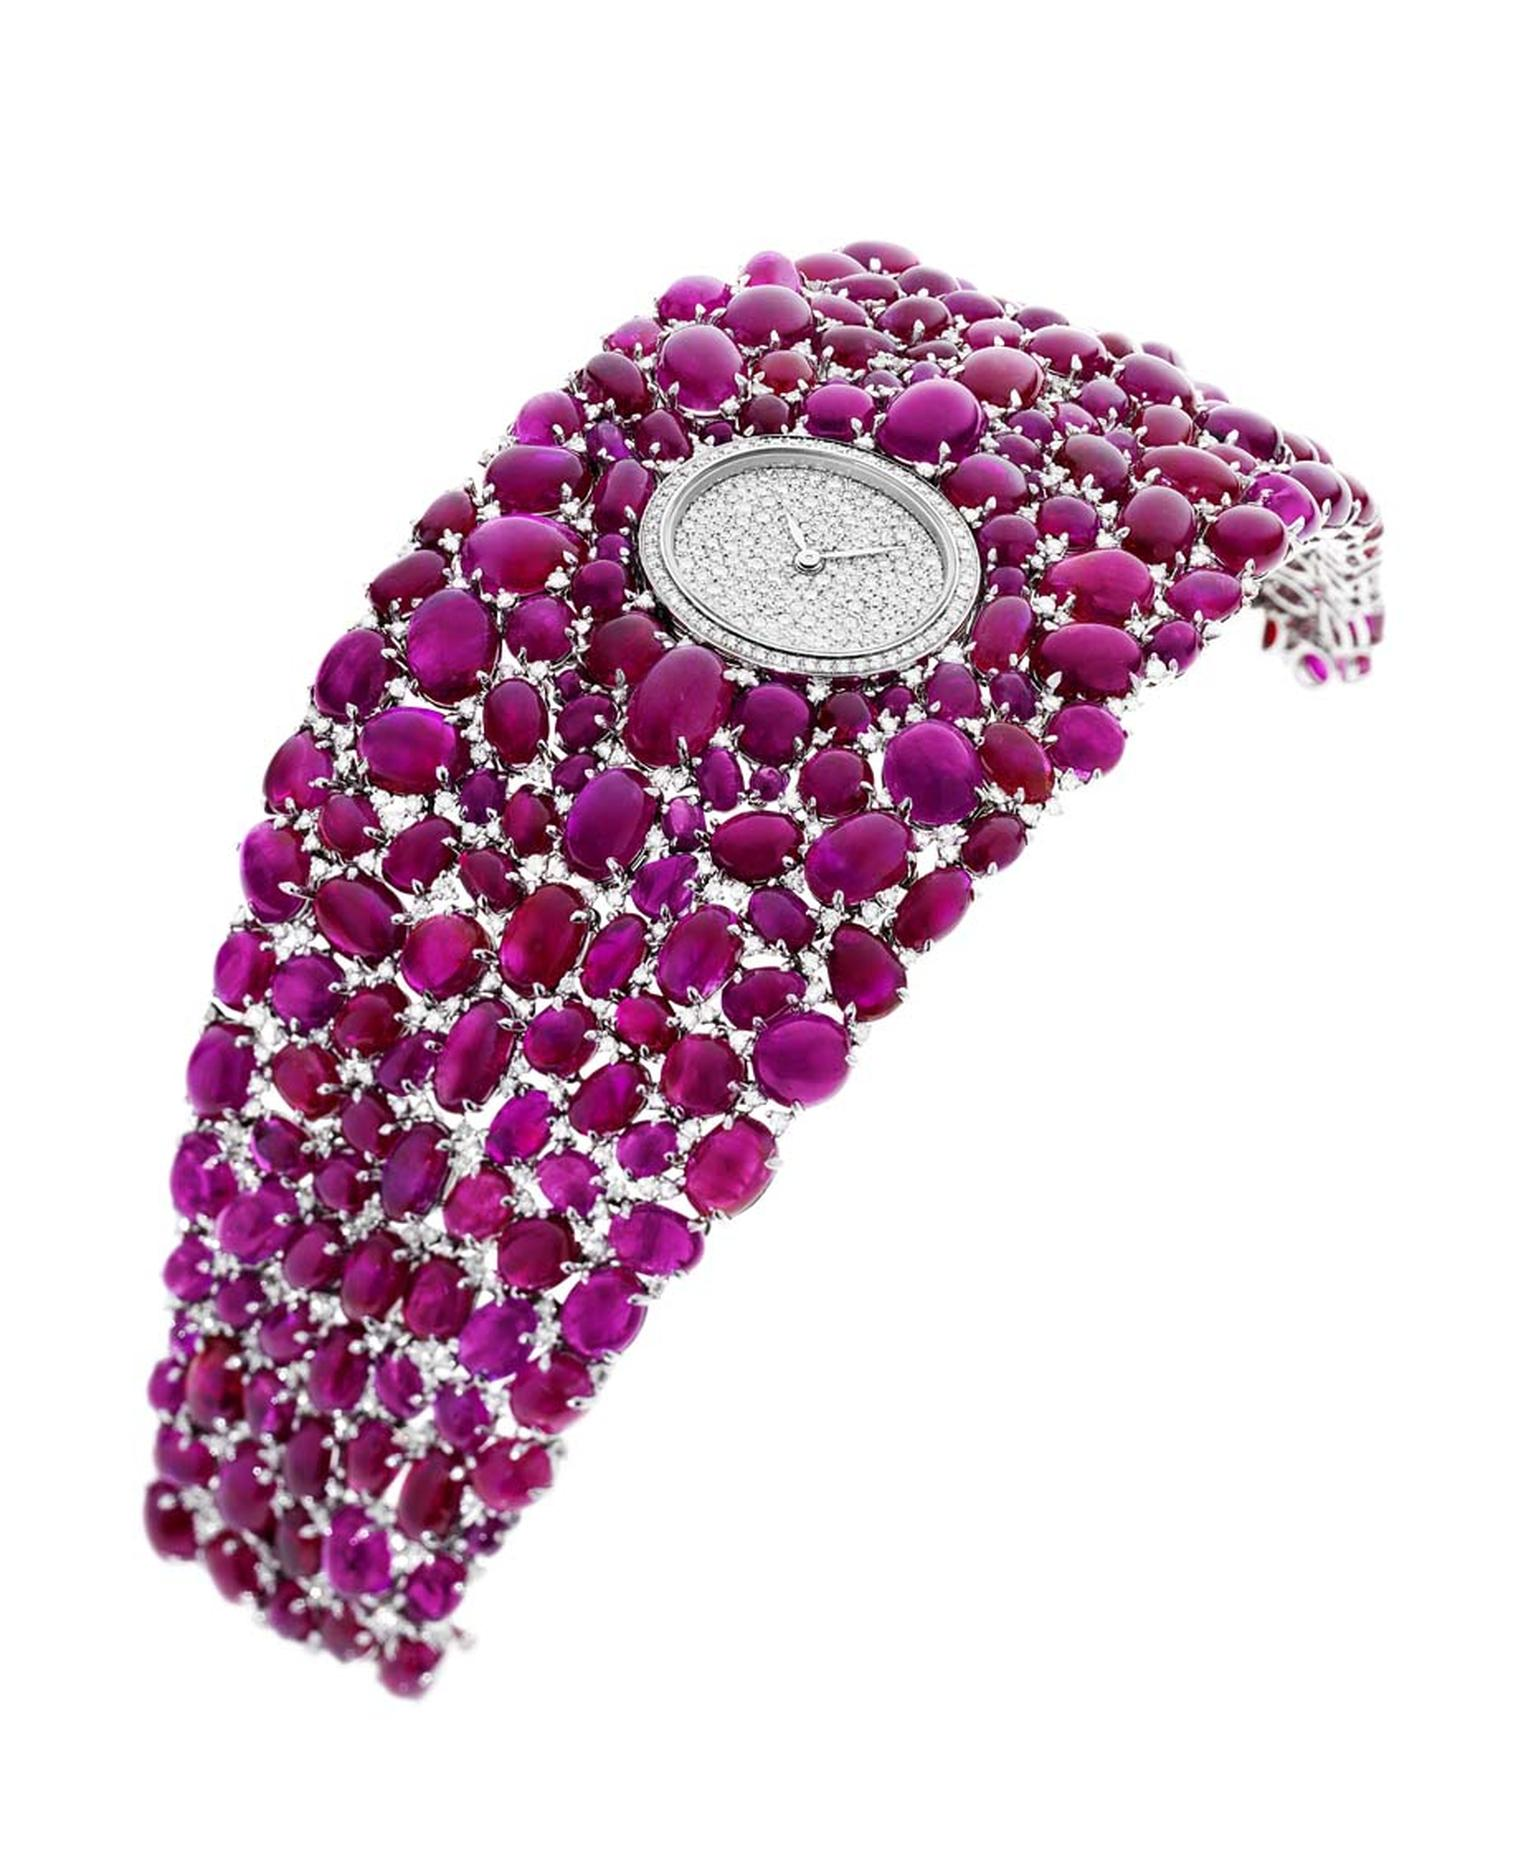 A finalist in the 'Jewellery' category at this year's Grand Prix d'Horlogerie de Genève, 218 diamonds add sparkle to the dial on DeLaneau's Grace Rubies jewellery watch.